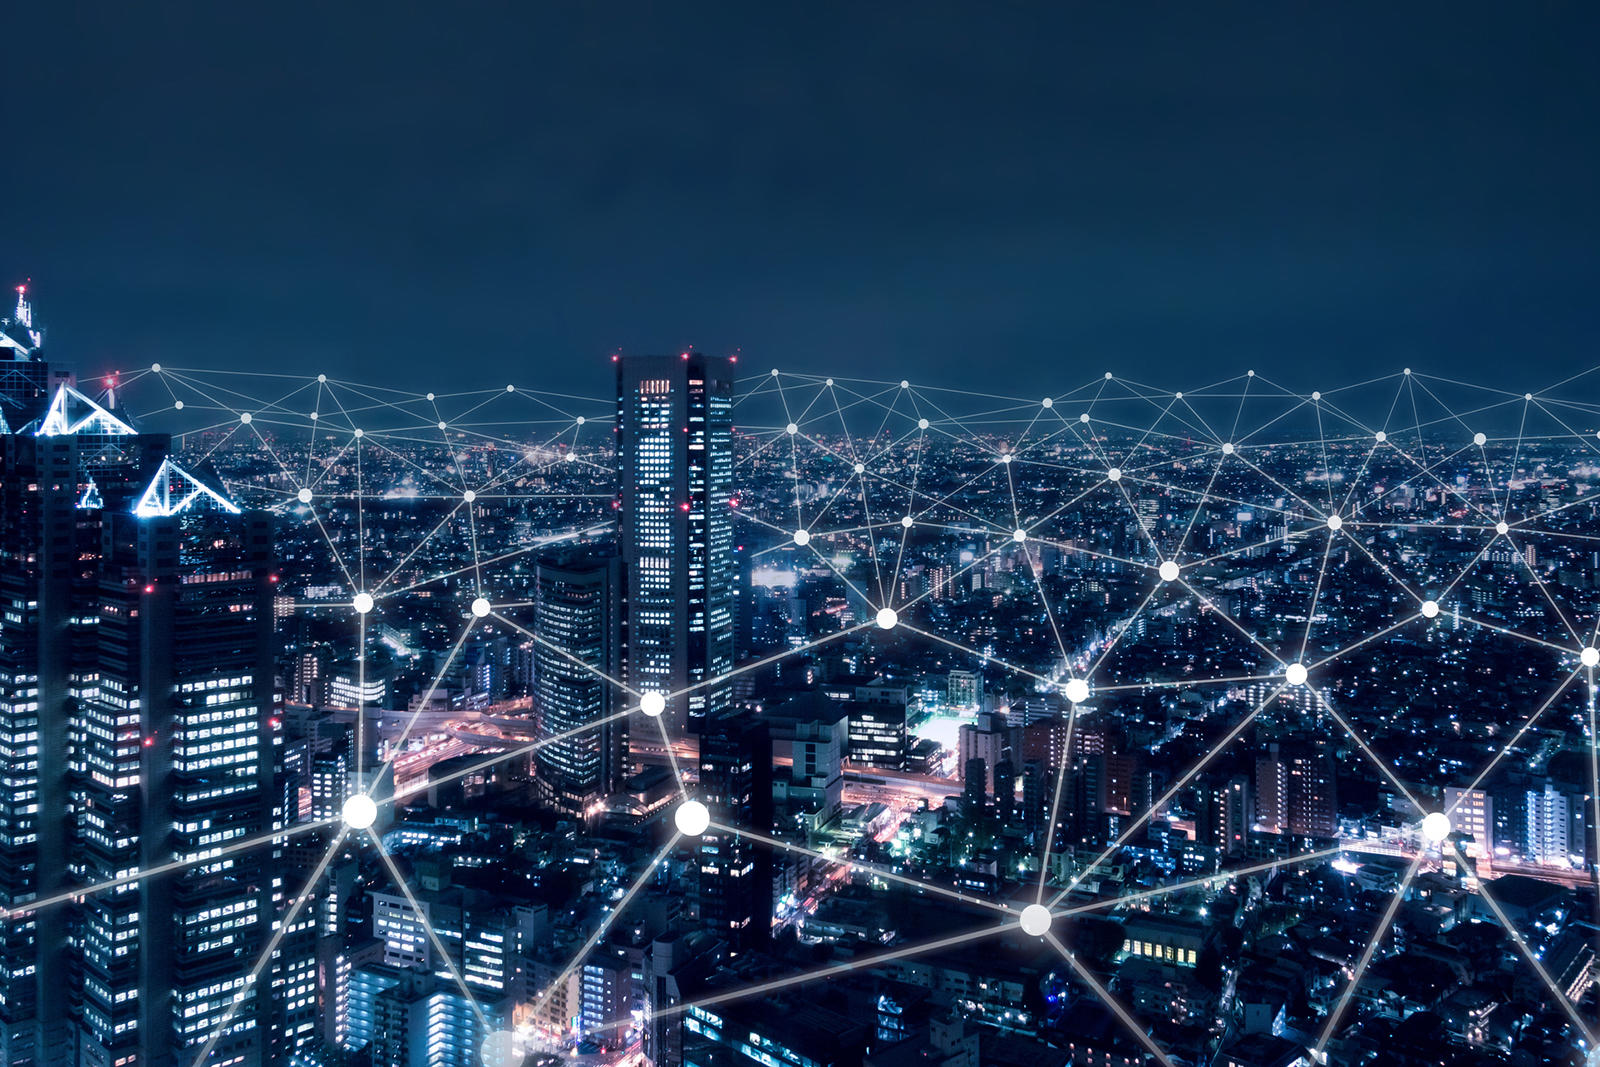 WiFi 6 will face 5G competition